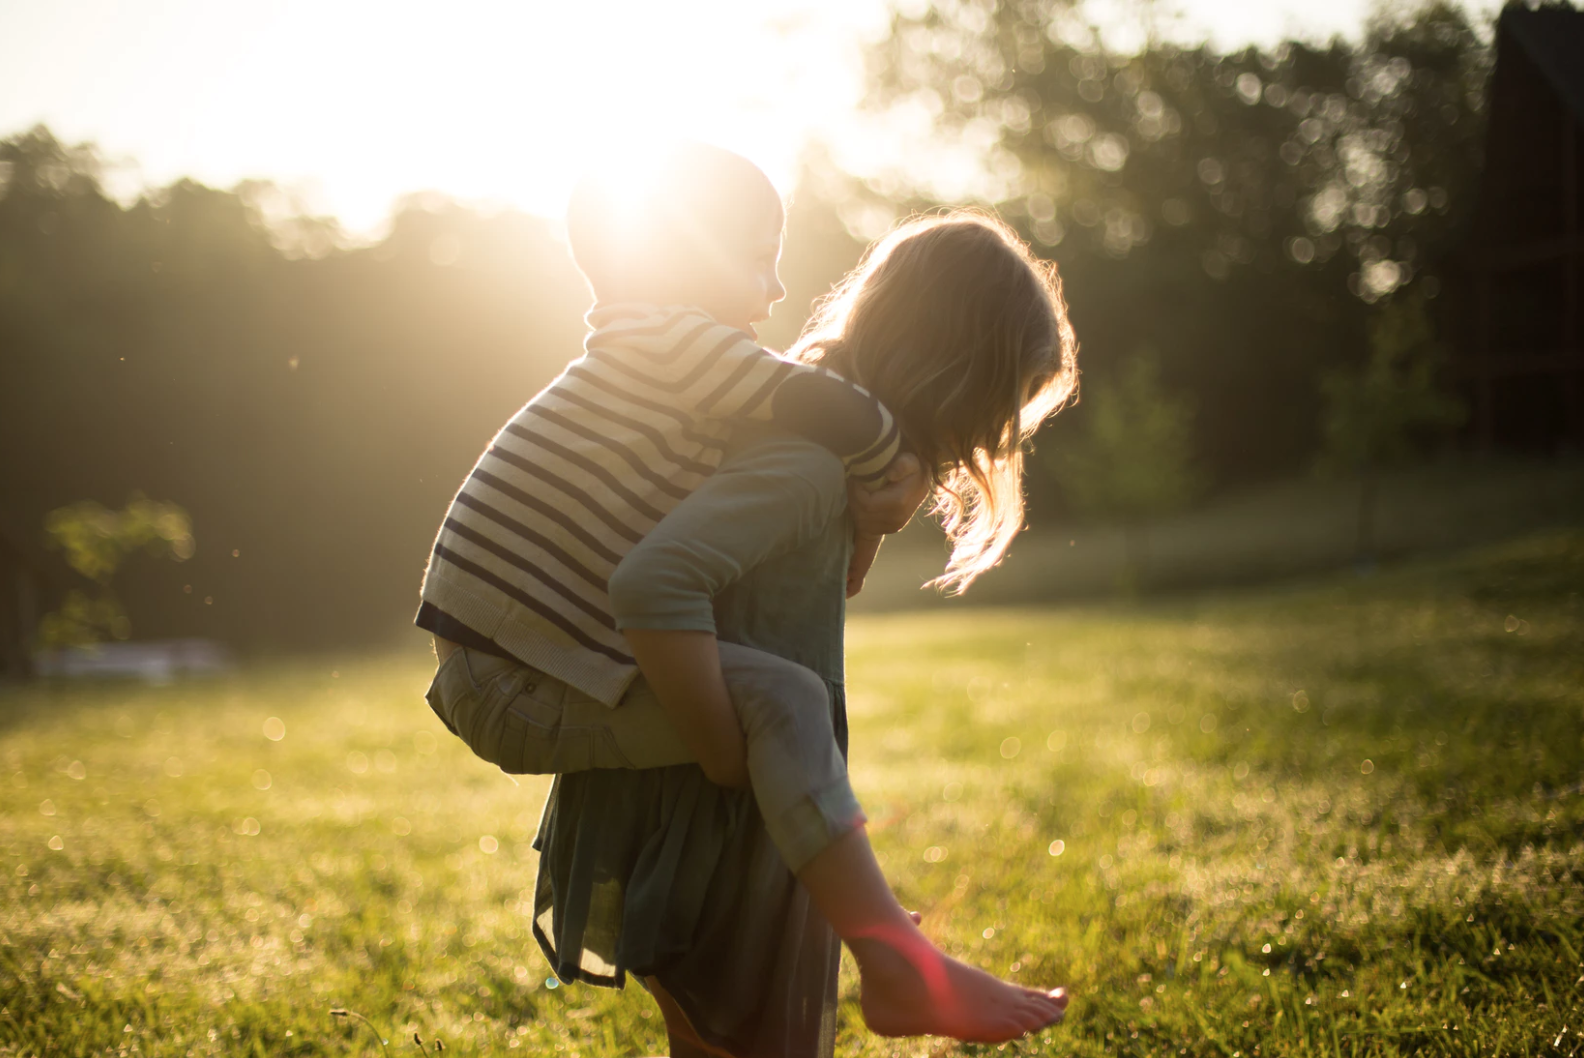 Family Activities to do this Spring: Top Ten